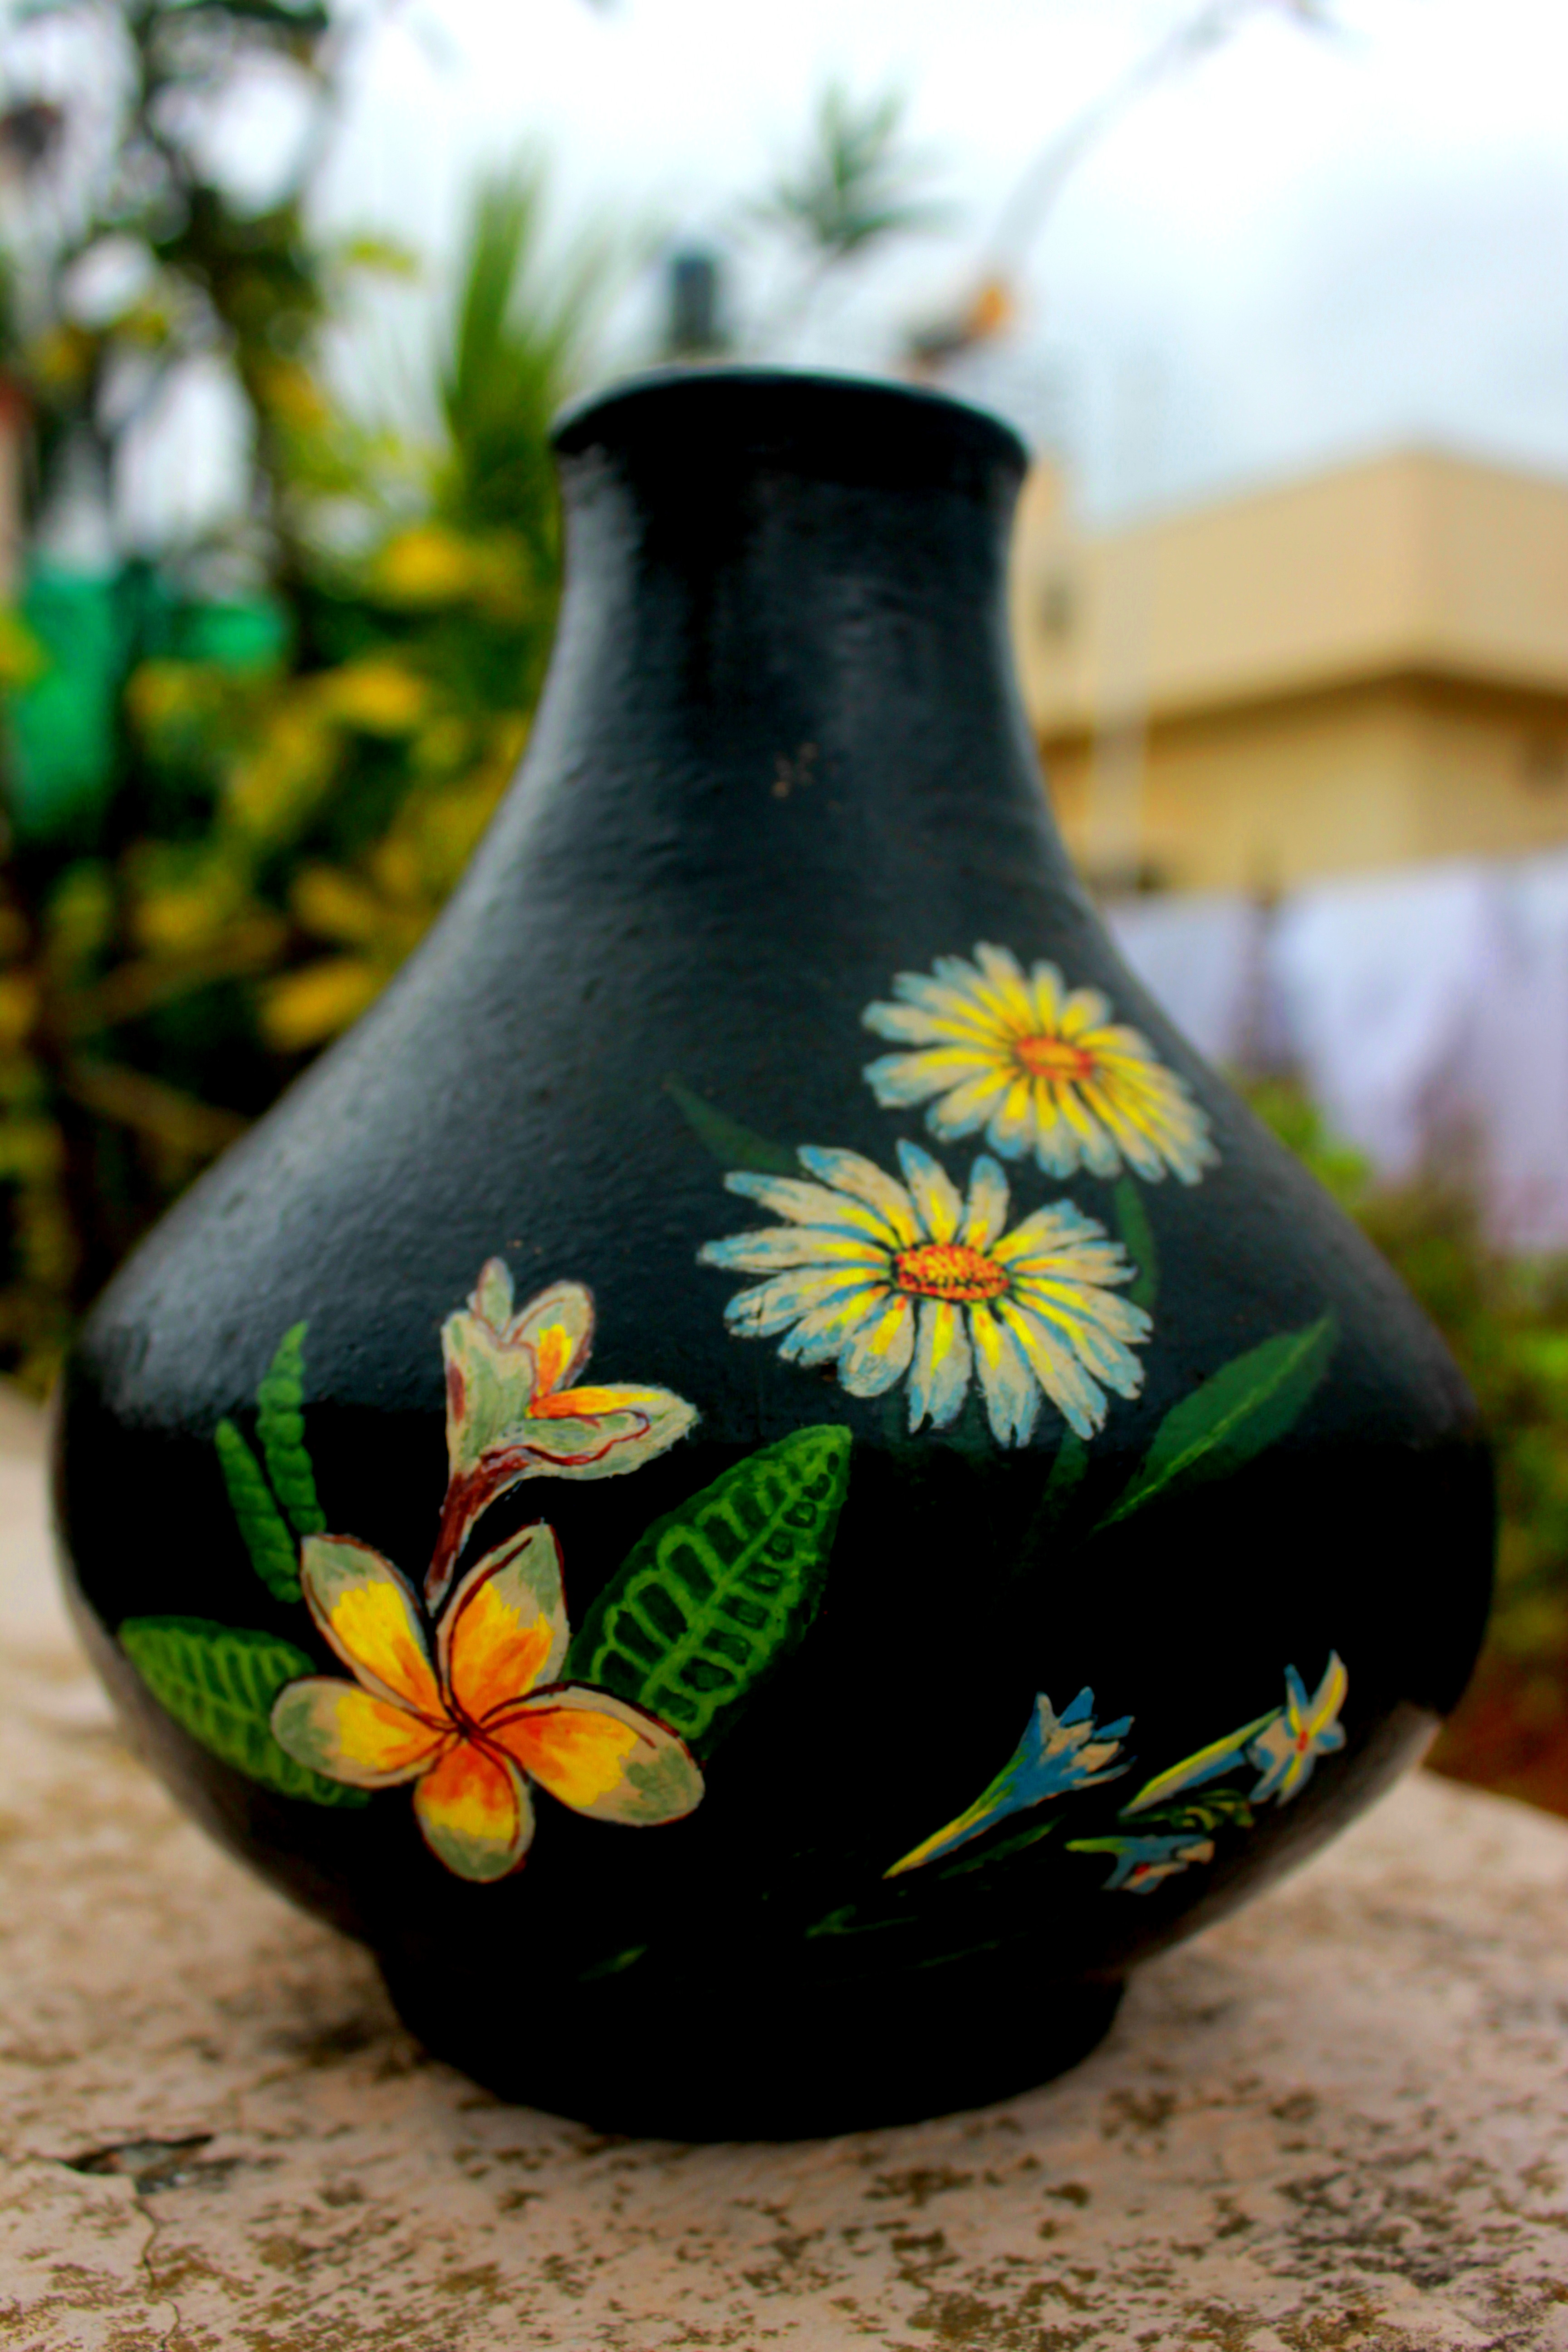 Painting Is A Fascinating Hobby I Realised It Much Easier To Paint On Pots Than Fabric Because You Dont Have Dilute The